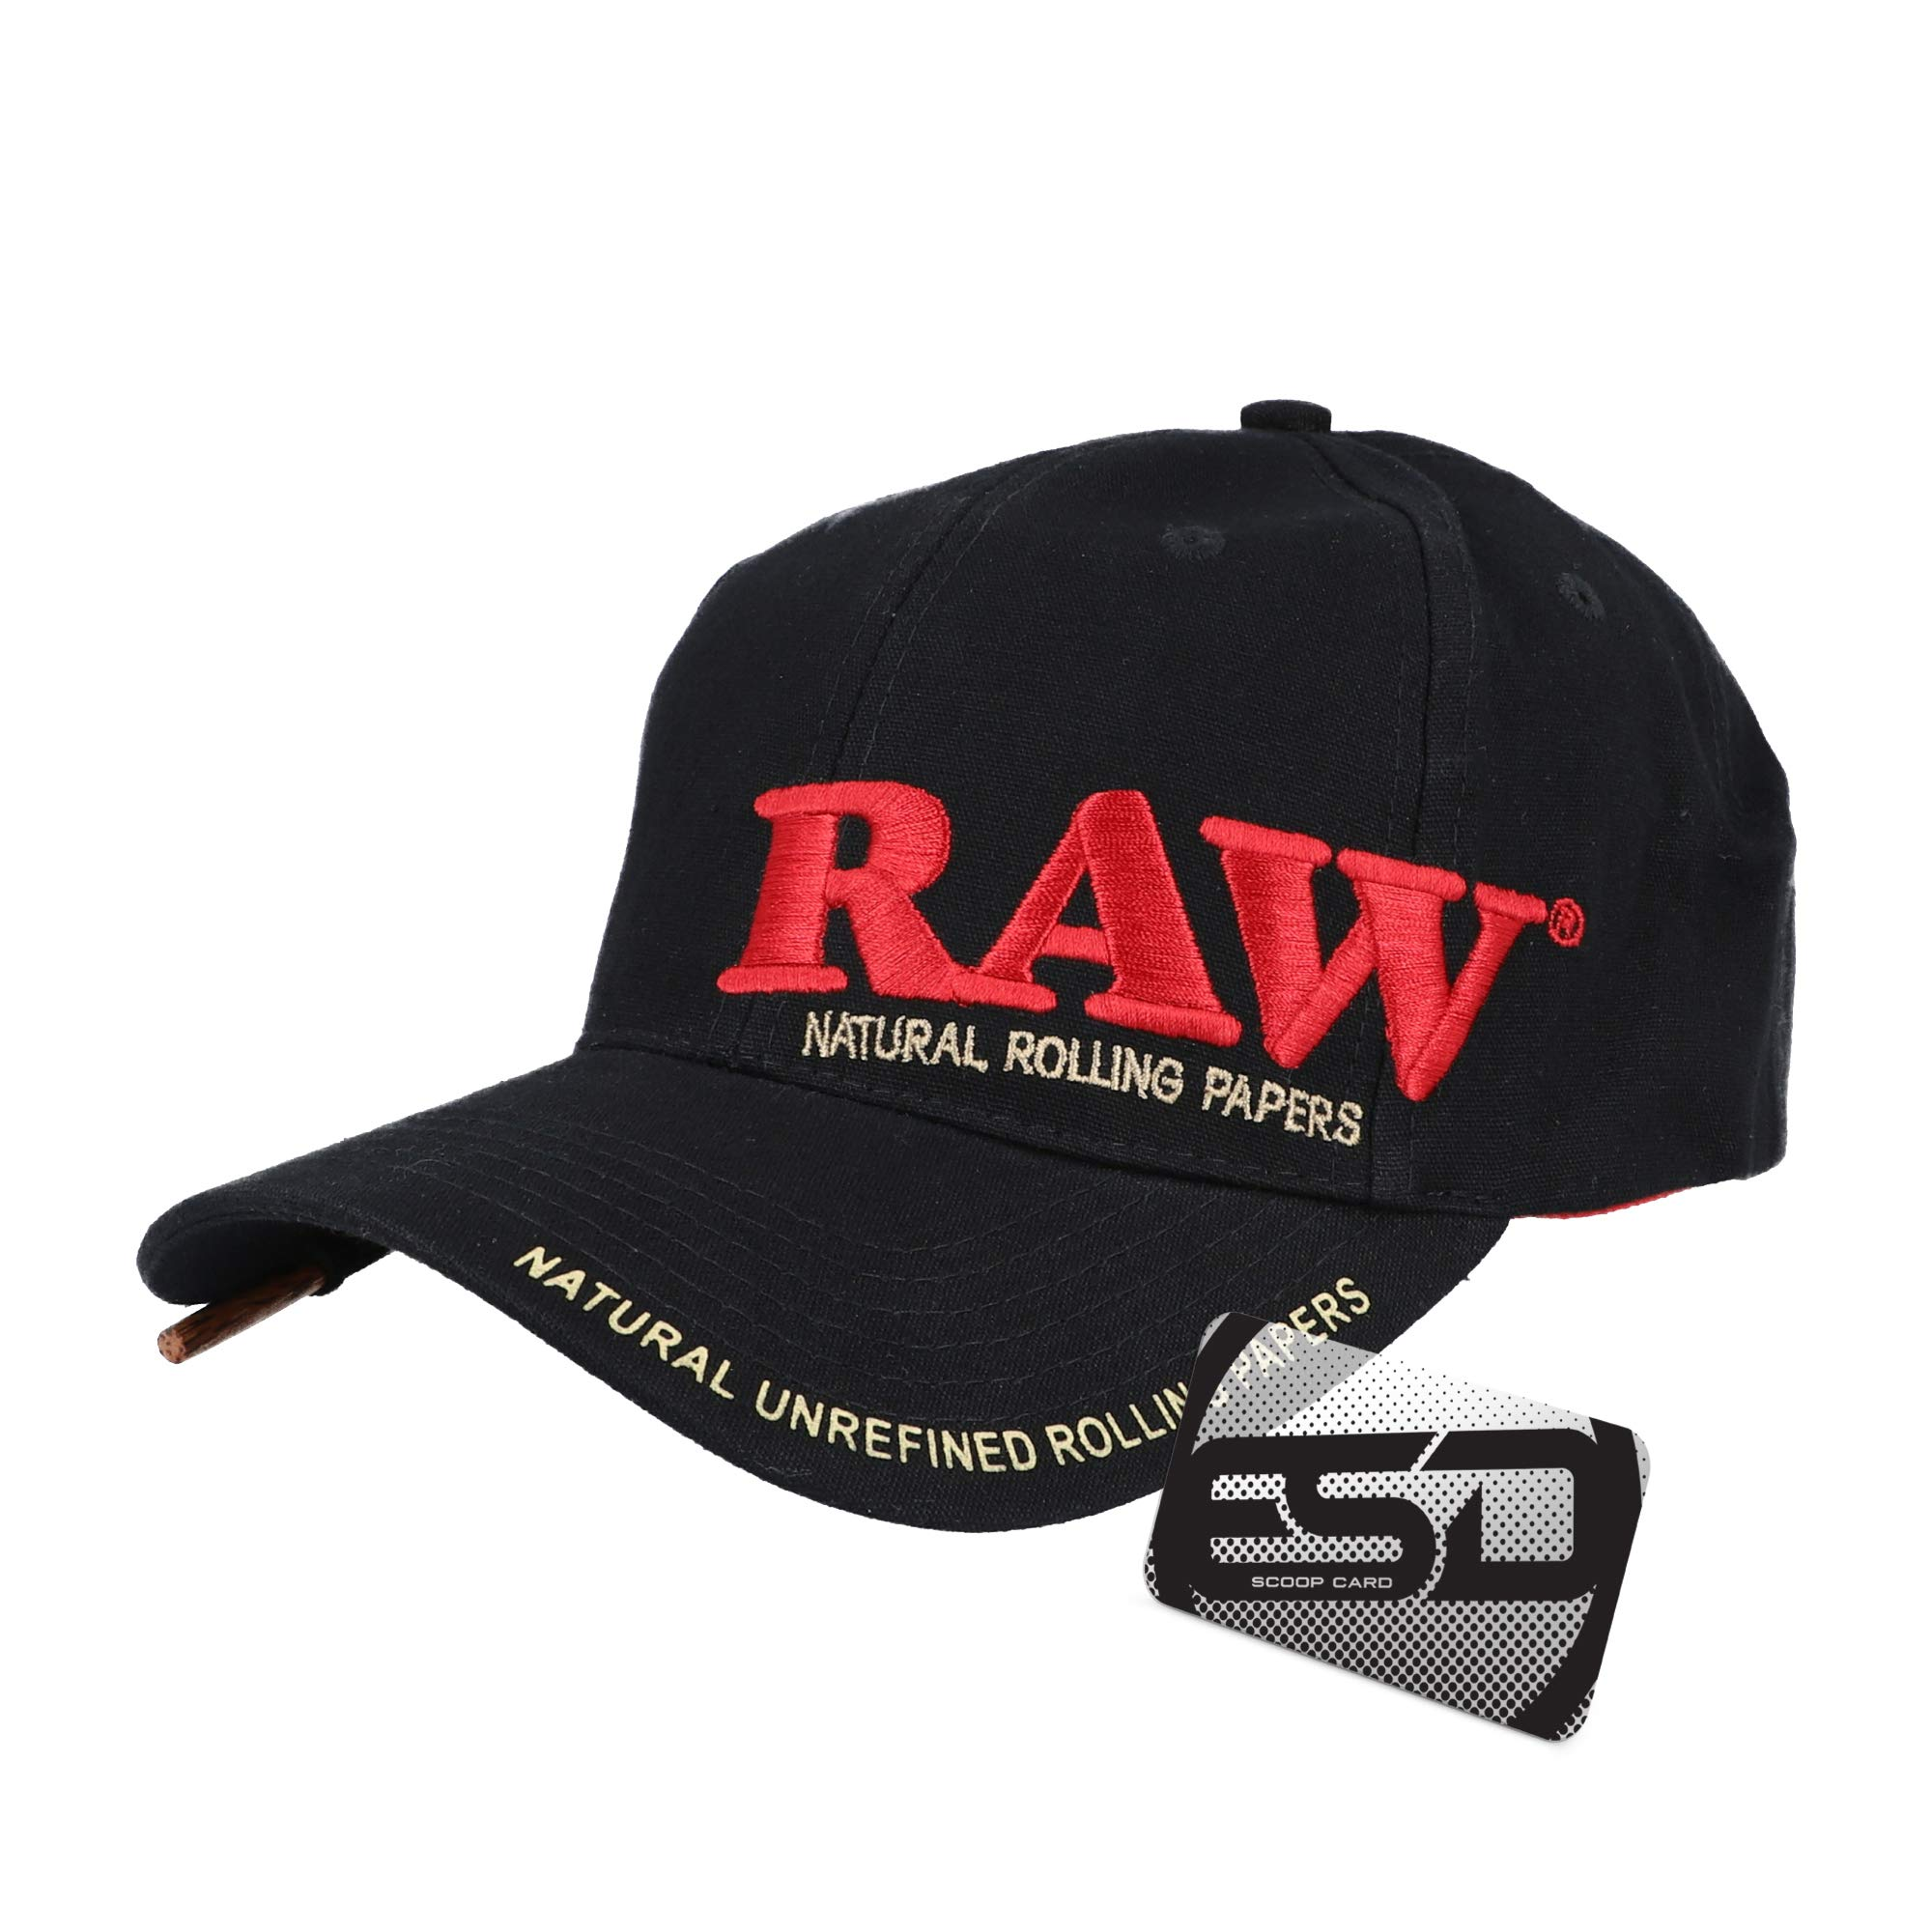 RAW Black Hat Unisex Original Promo Curved Bill Adjustable Cap | Mens and Womens Stylish Smokers Snap Back Hat